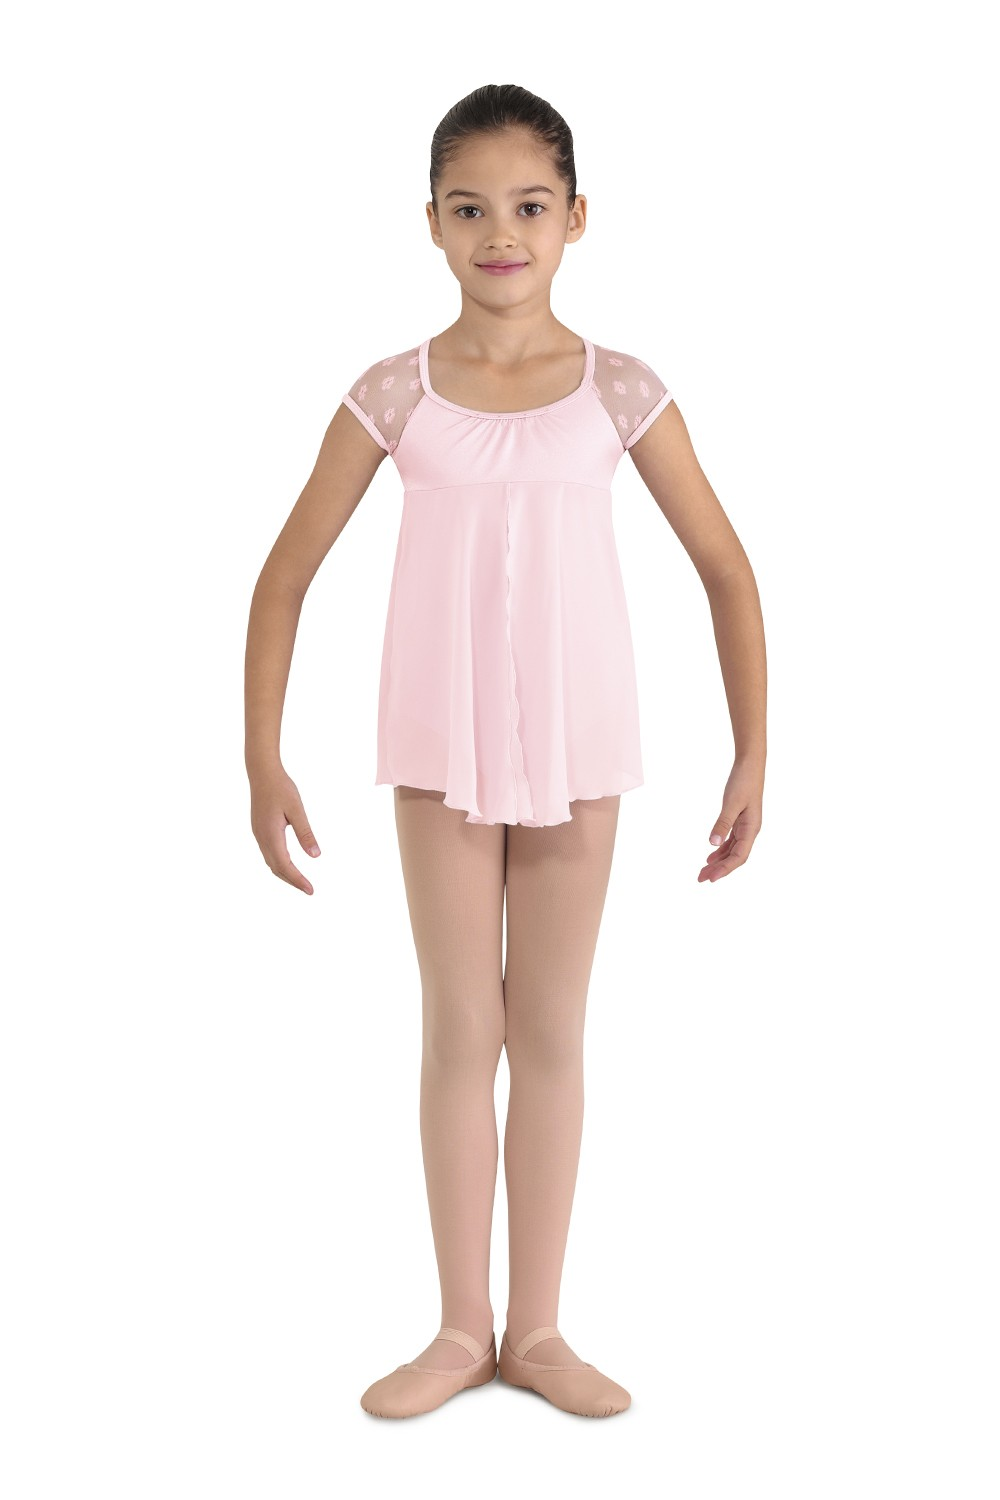 Glitterdust Children's Dance Leotards